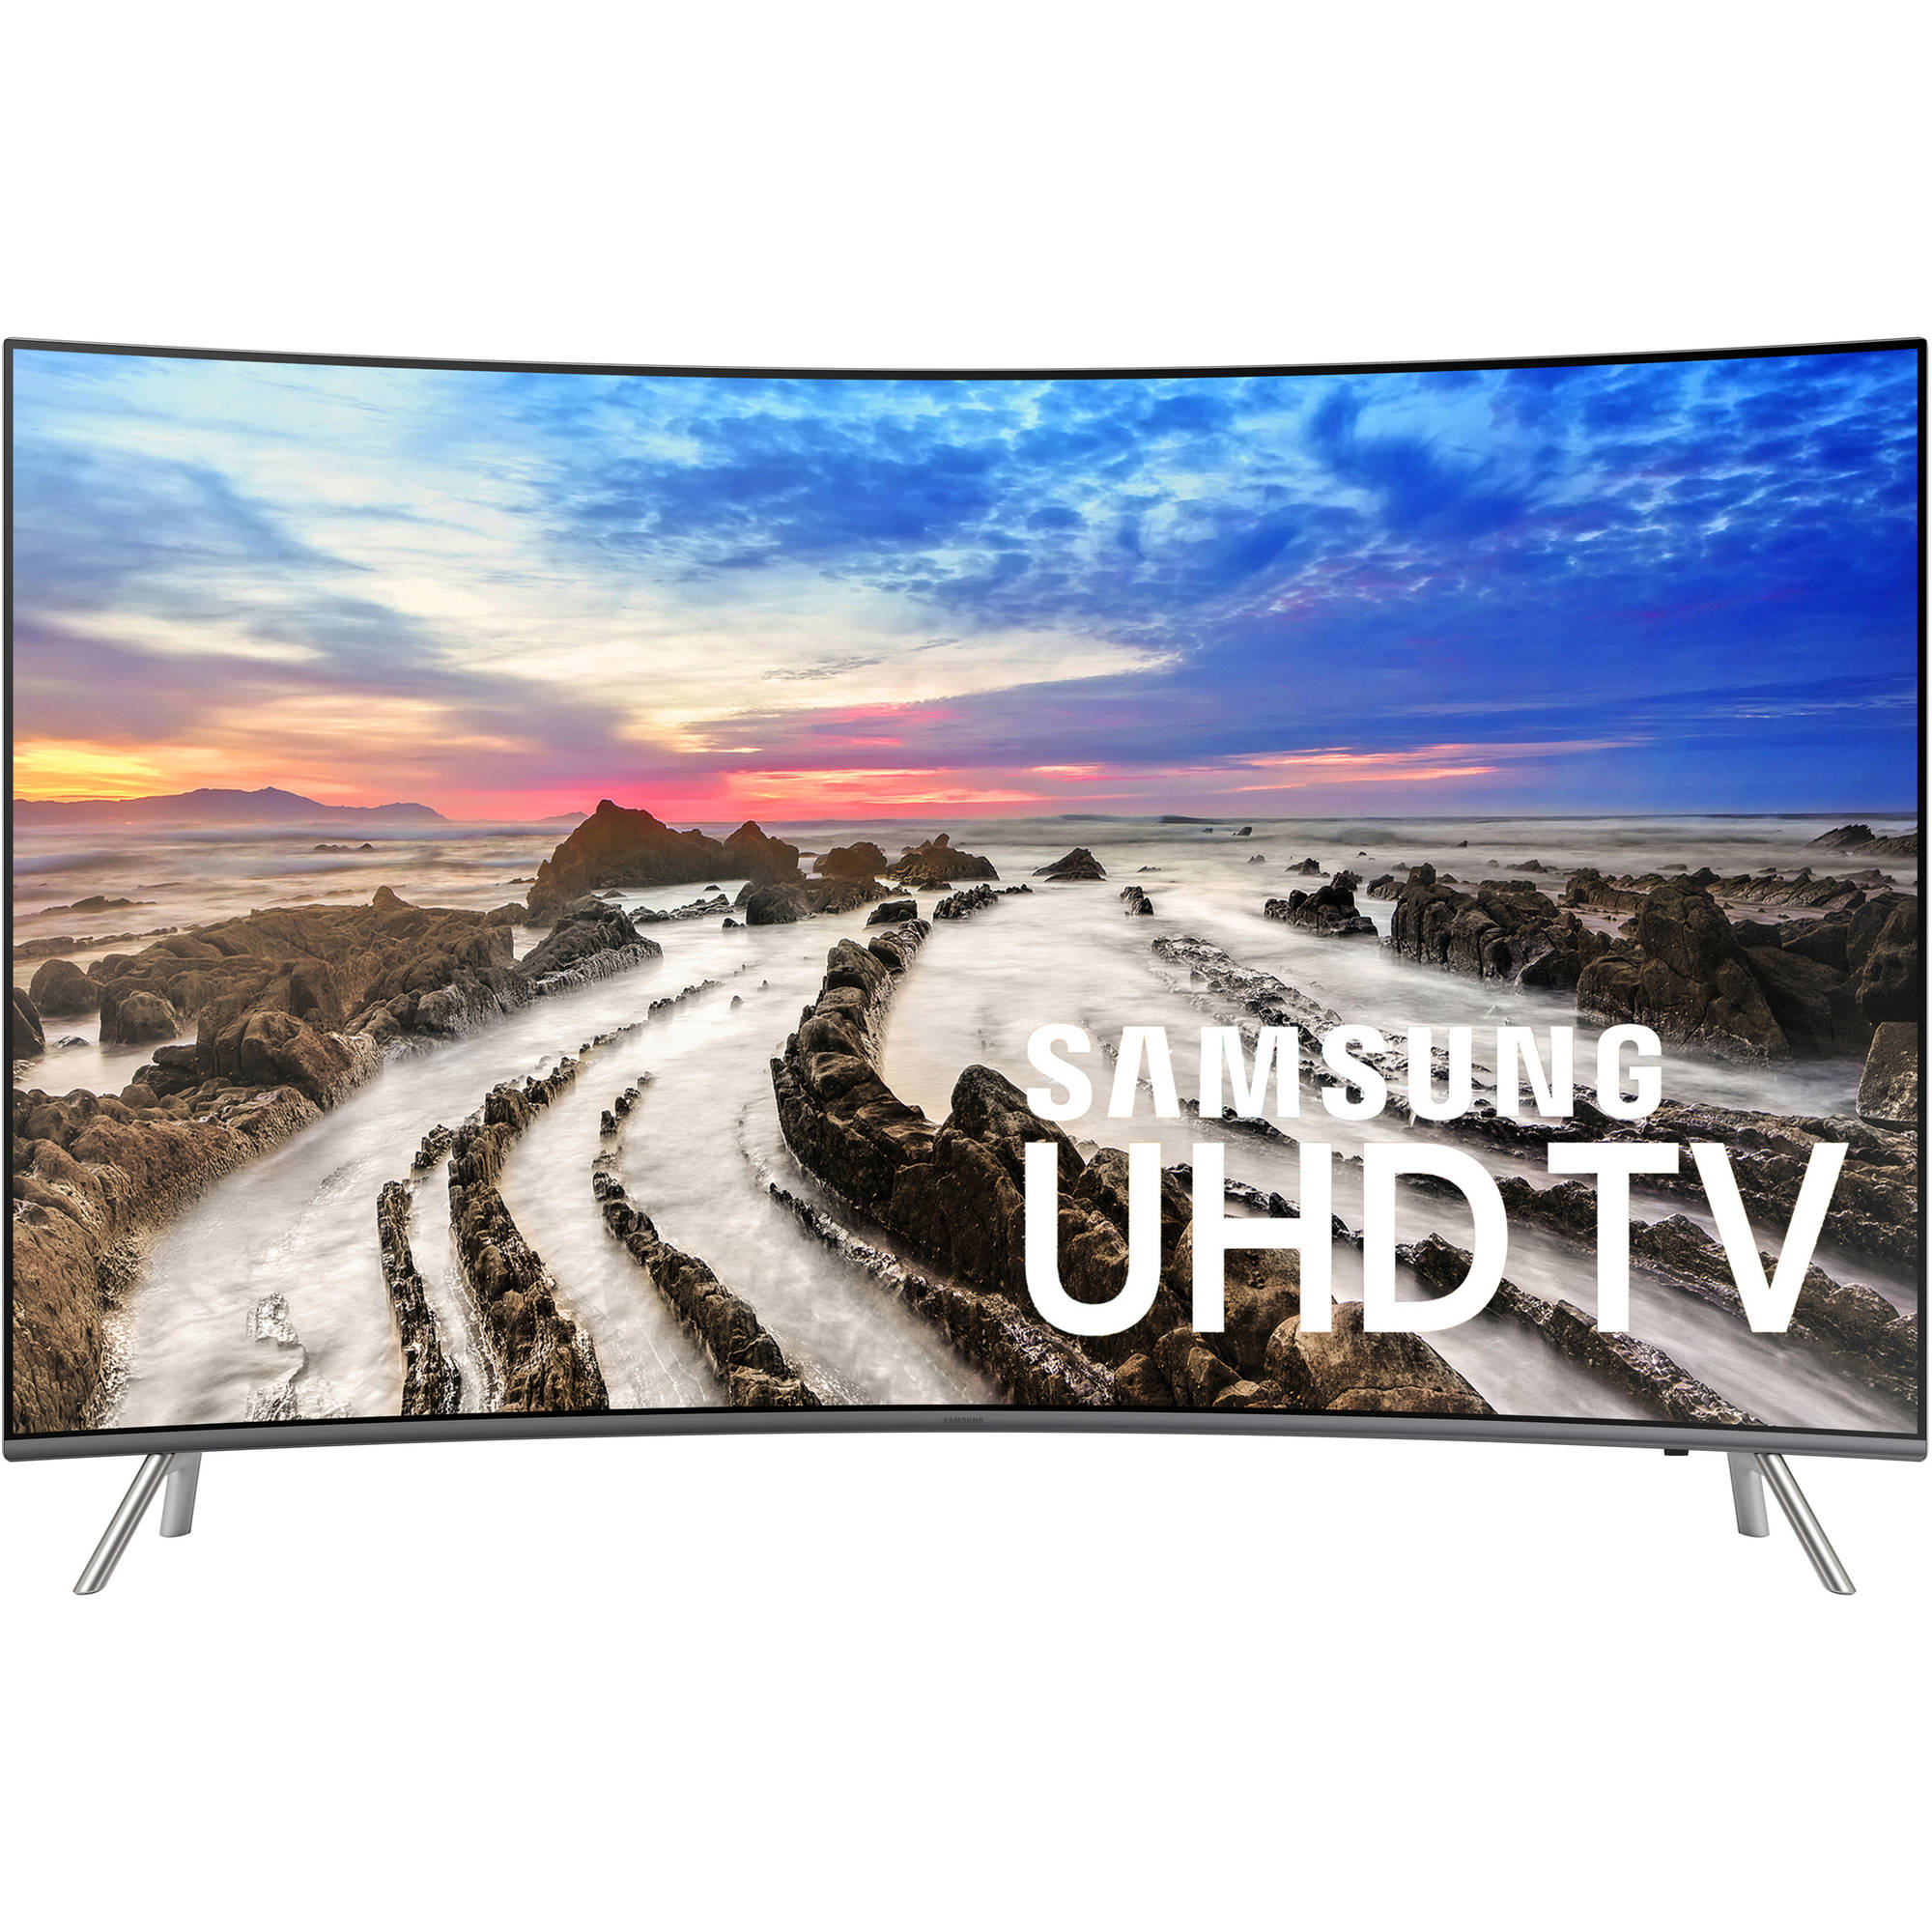 "SAMSUNG 55"" Class Curved 4K (2160P) Ultra HD Smart LED TV (UN55MU8500FXZA)"